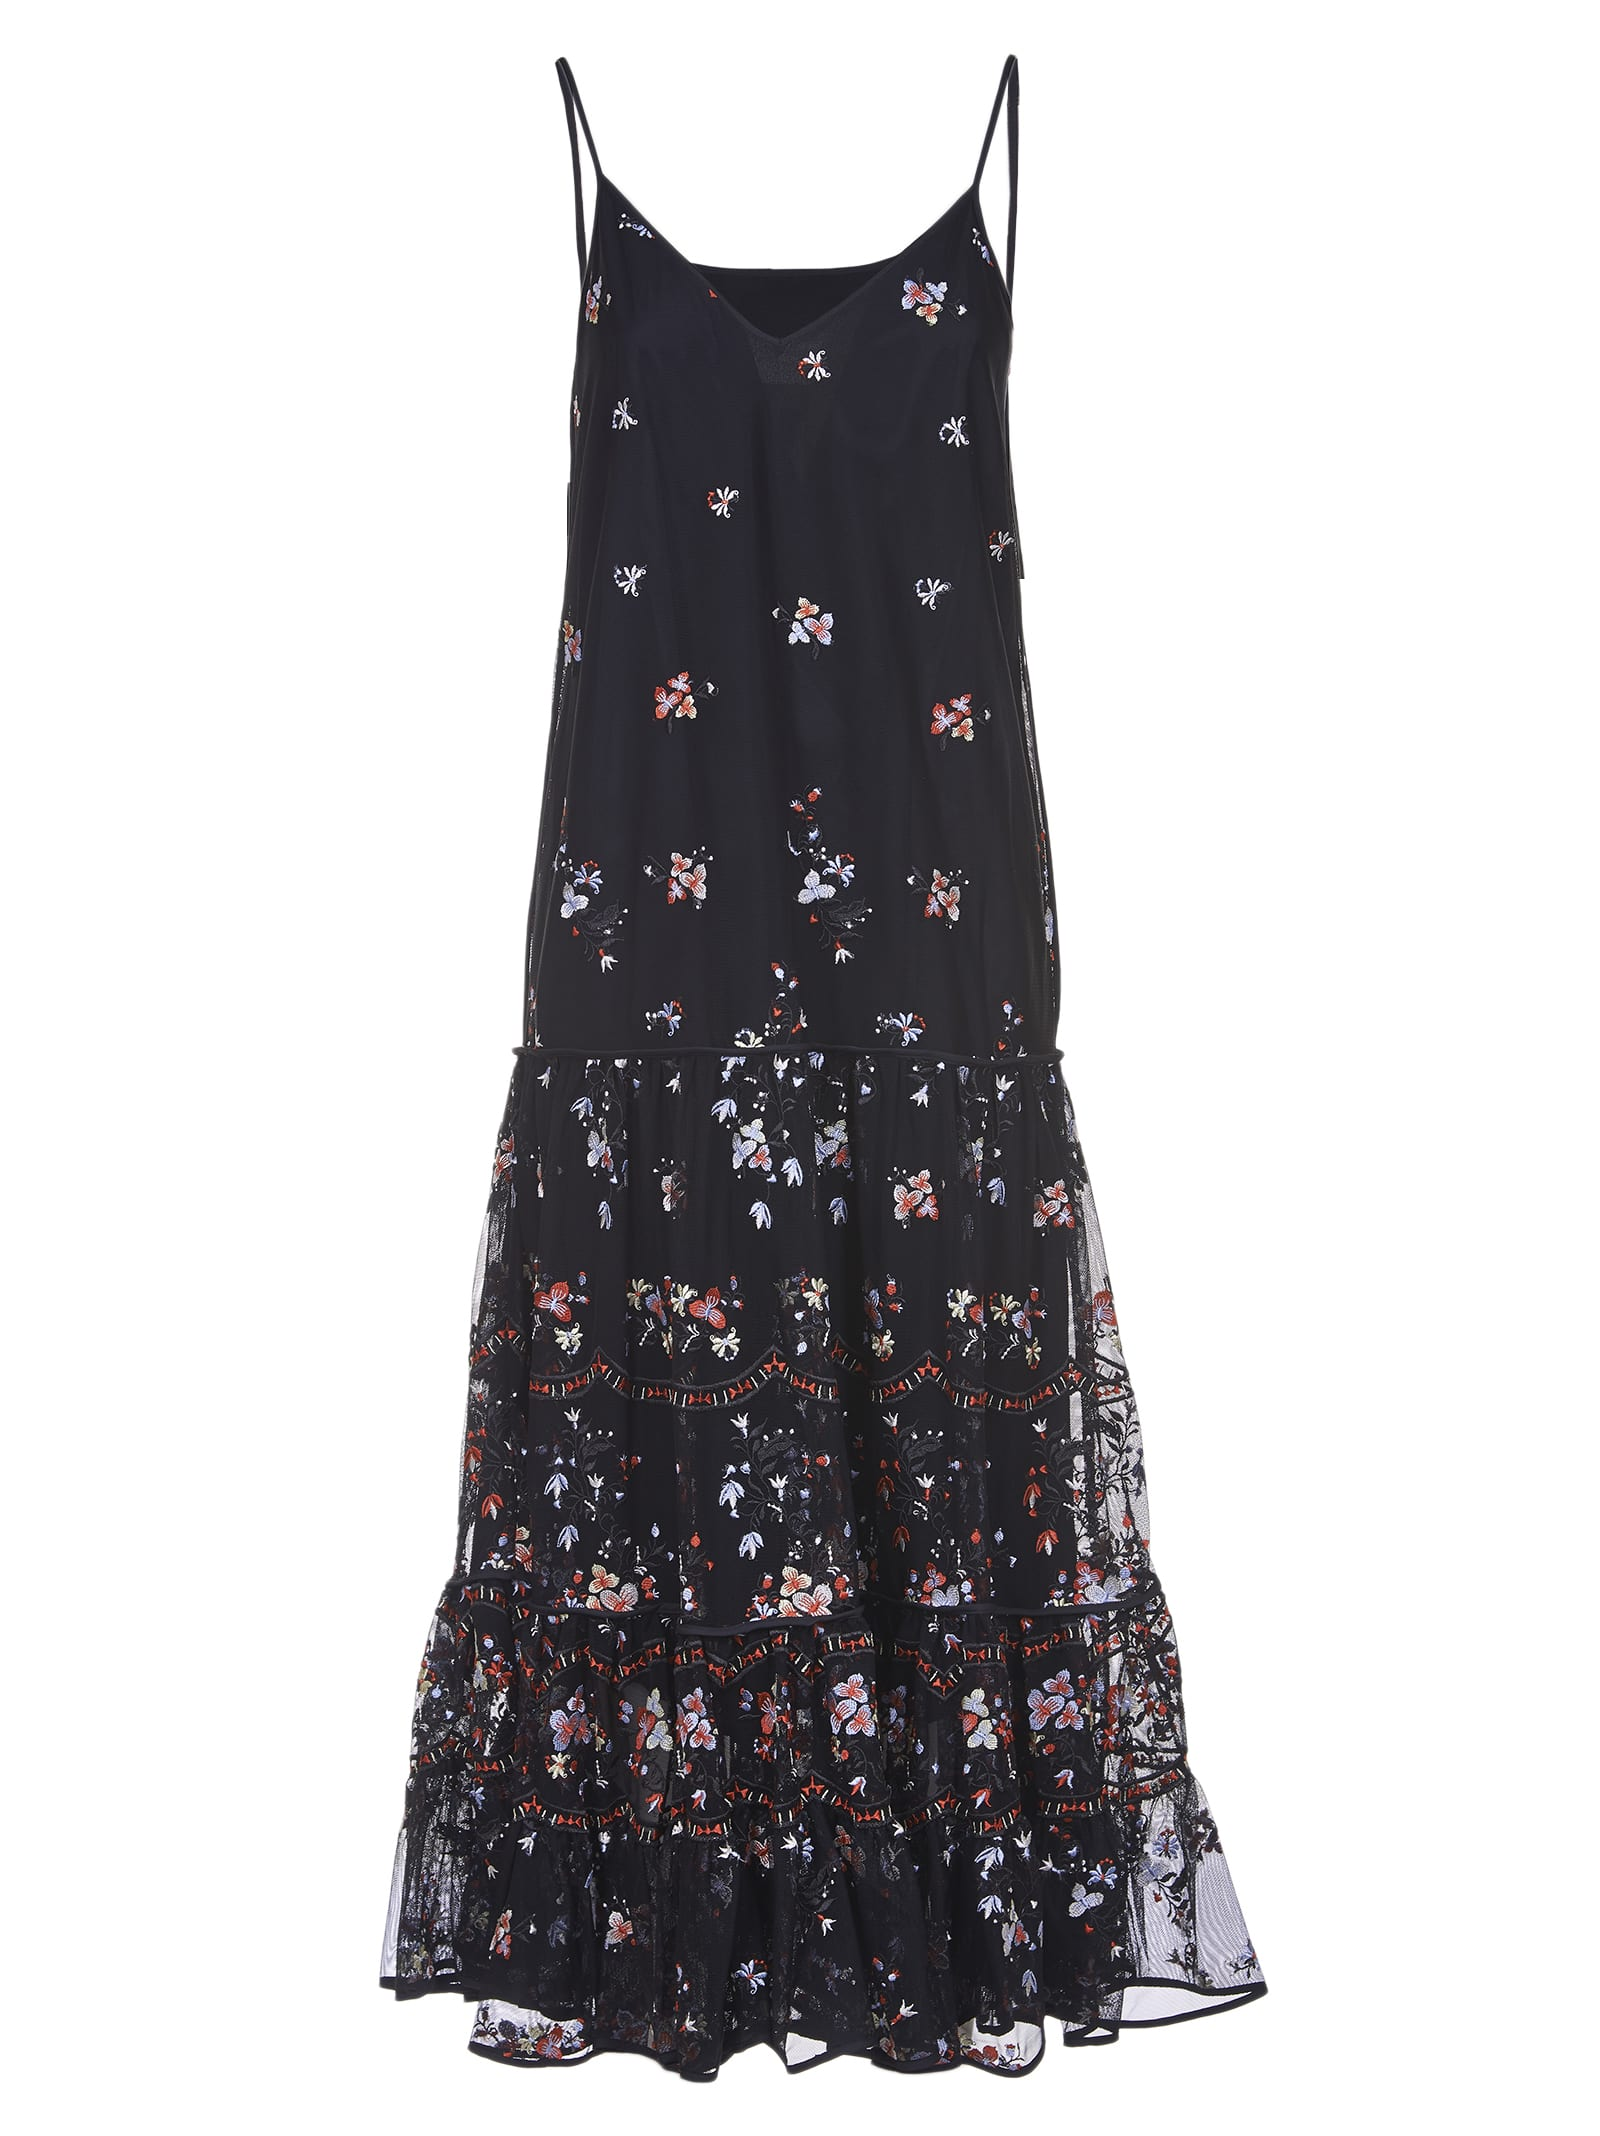 Buy Tory Burch Dress Embroidered Tulle Tory Burch online, shop Tory Burch with free shipping